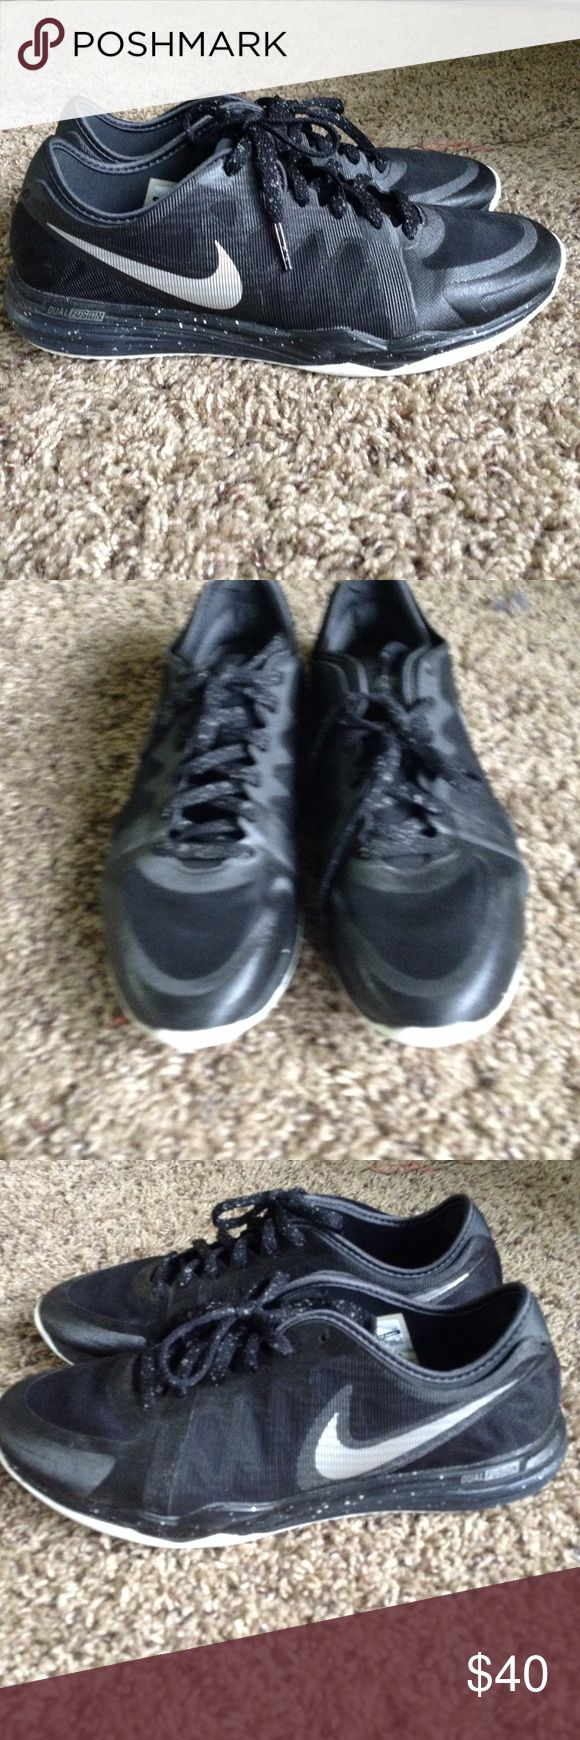 Nike Dual Fusion Shoes Like new. Nike Shoes Athletic Shoes